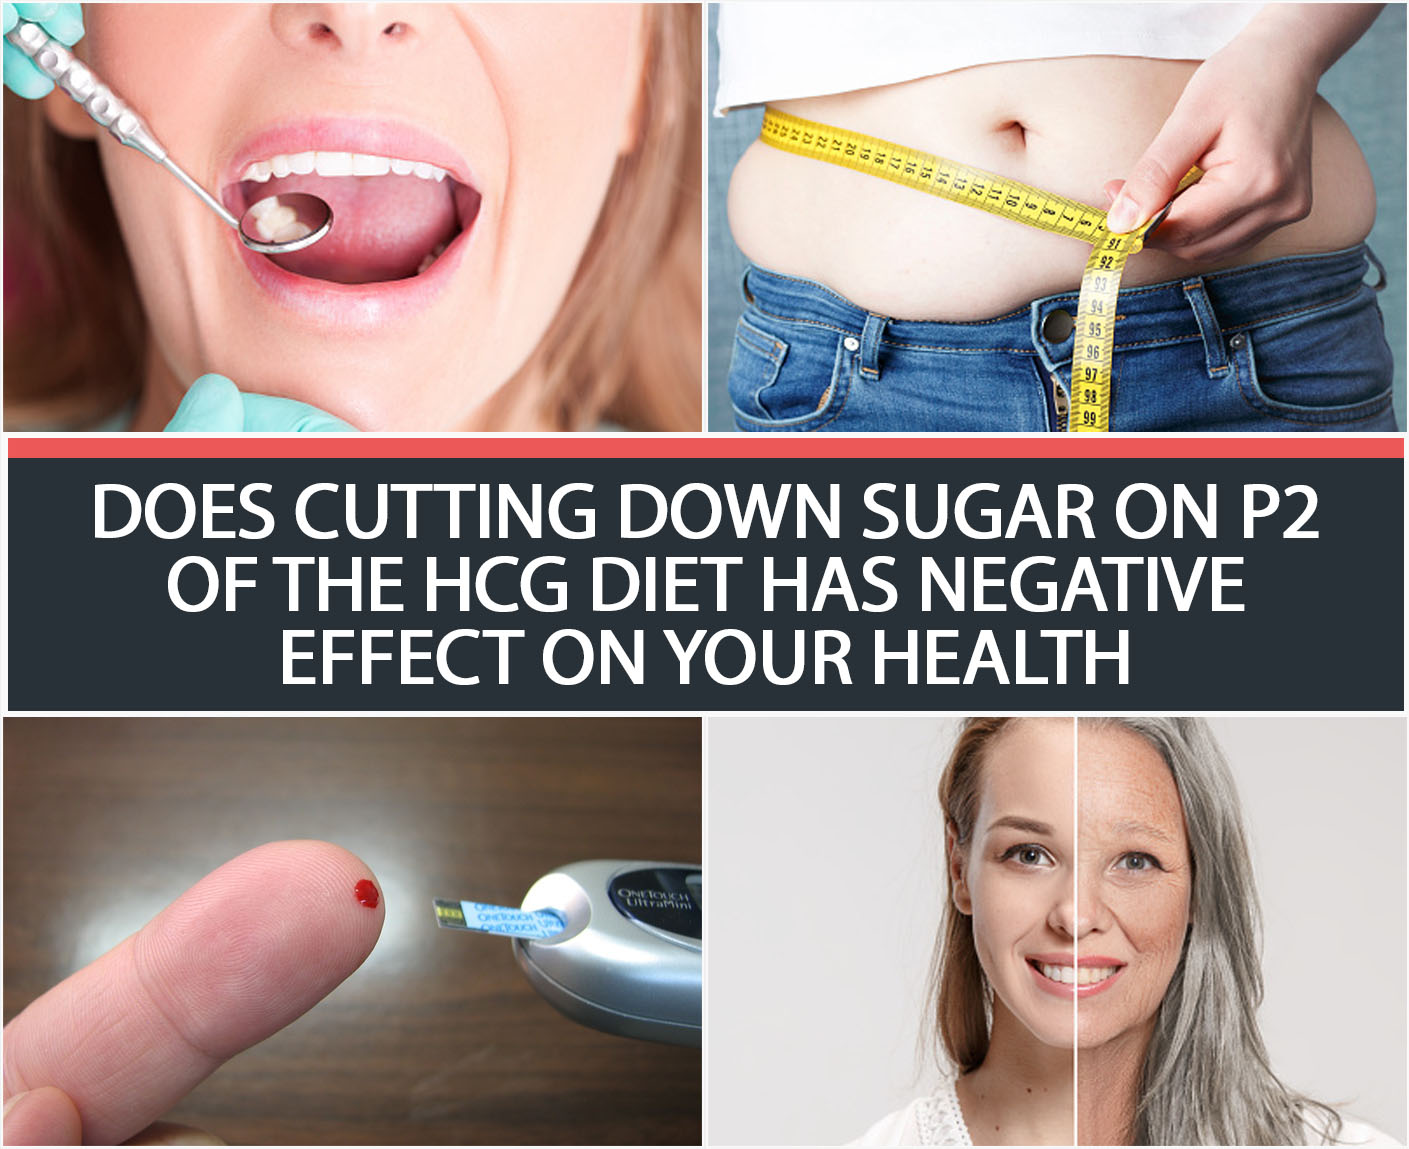 DOES CUTTING DOWN SUGAR ON P2 OF THE HCG DIET HAS NEGATIVE EFFECT ON YOUR HEALTH?